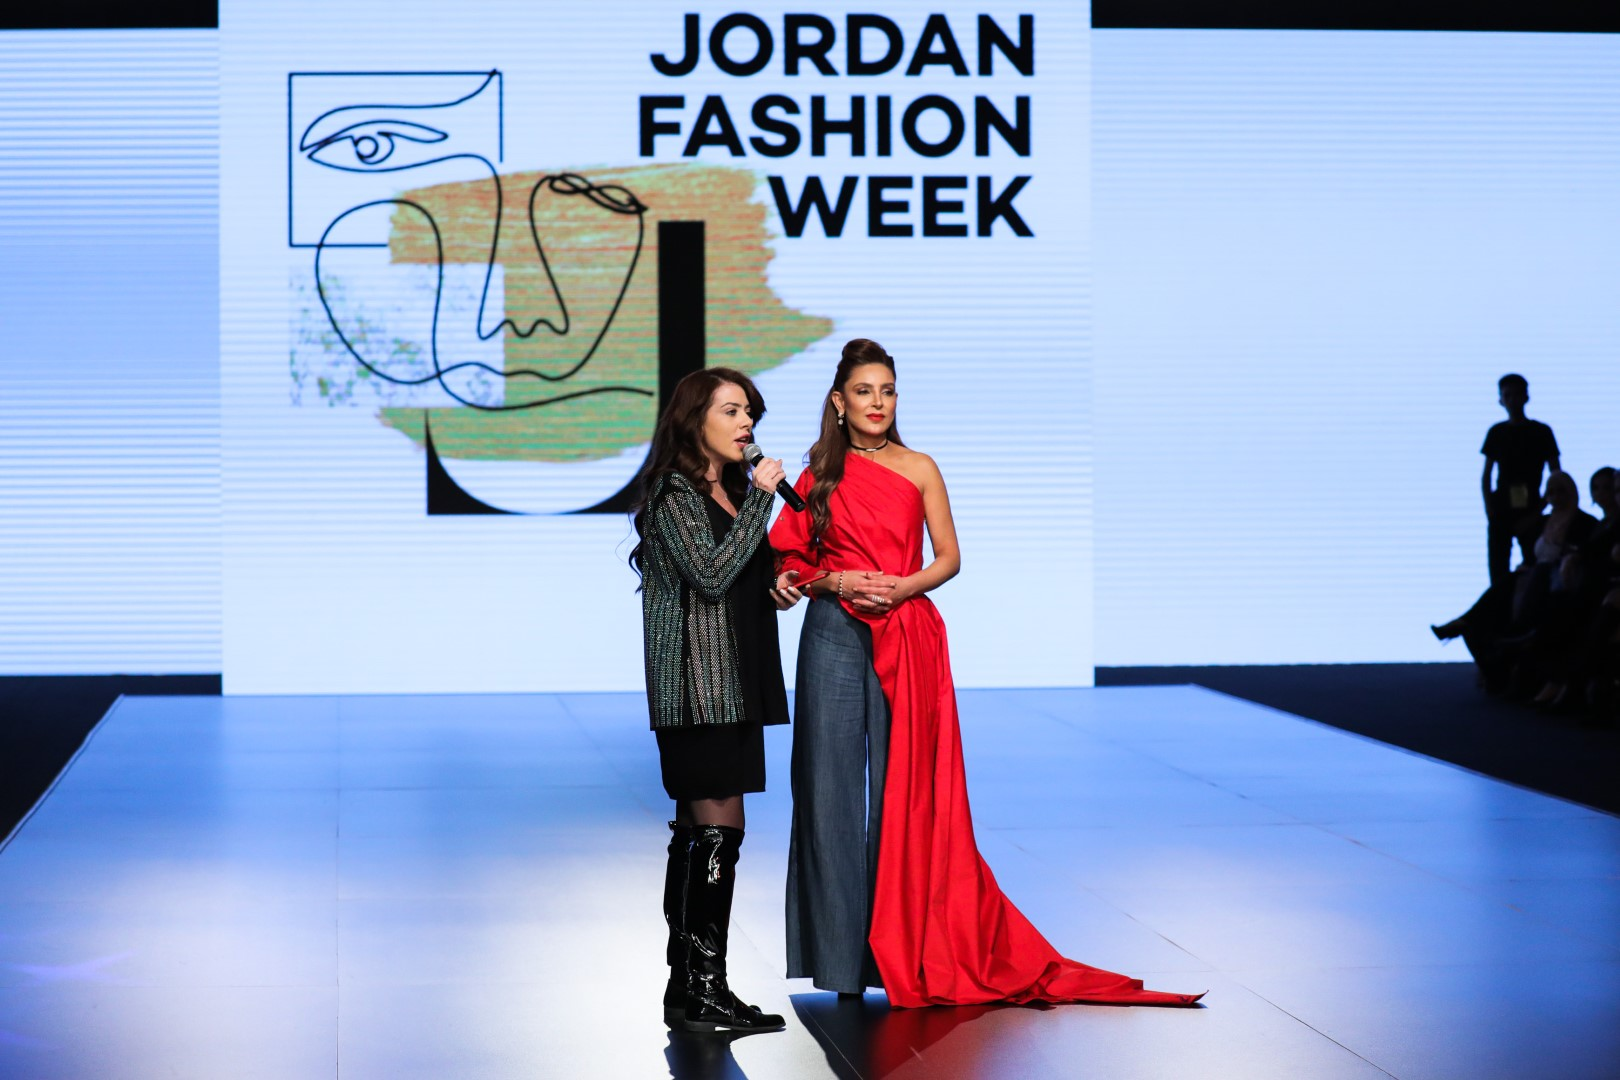 AMMAN, JORDAN - MARCH 30: (L-R)  Zena Zananiri from Ayla Oasis Management Company and founder of Jordan Fashion Week Shirene Rifai speak on the runway prior to the Lindt Chocolate Couture show during Jordan Fashion Week 019 at the Kempinski Amman on March 30, 2019 in Amman, Jordan.  (Photo by Thomas Concordia/Getty Images for Jordan Fashion Week)